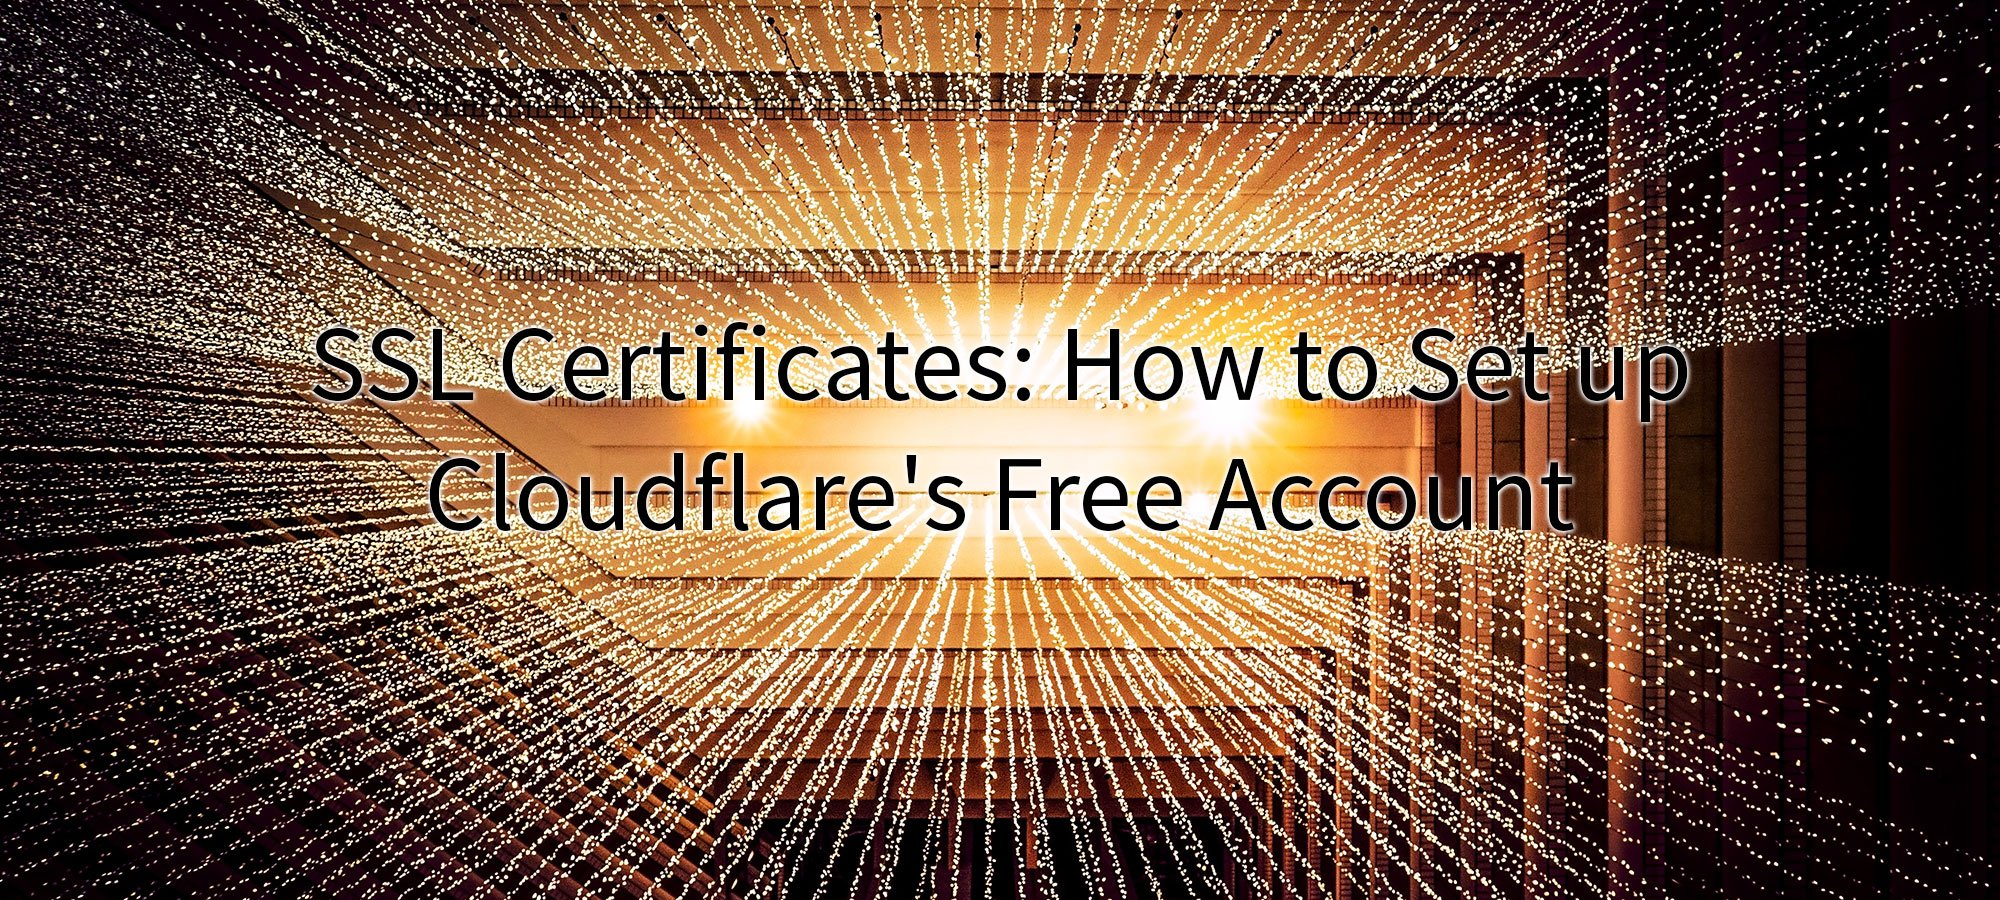 Ssl Certificates How To Set Up Cloudflares Free Account